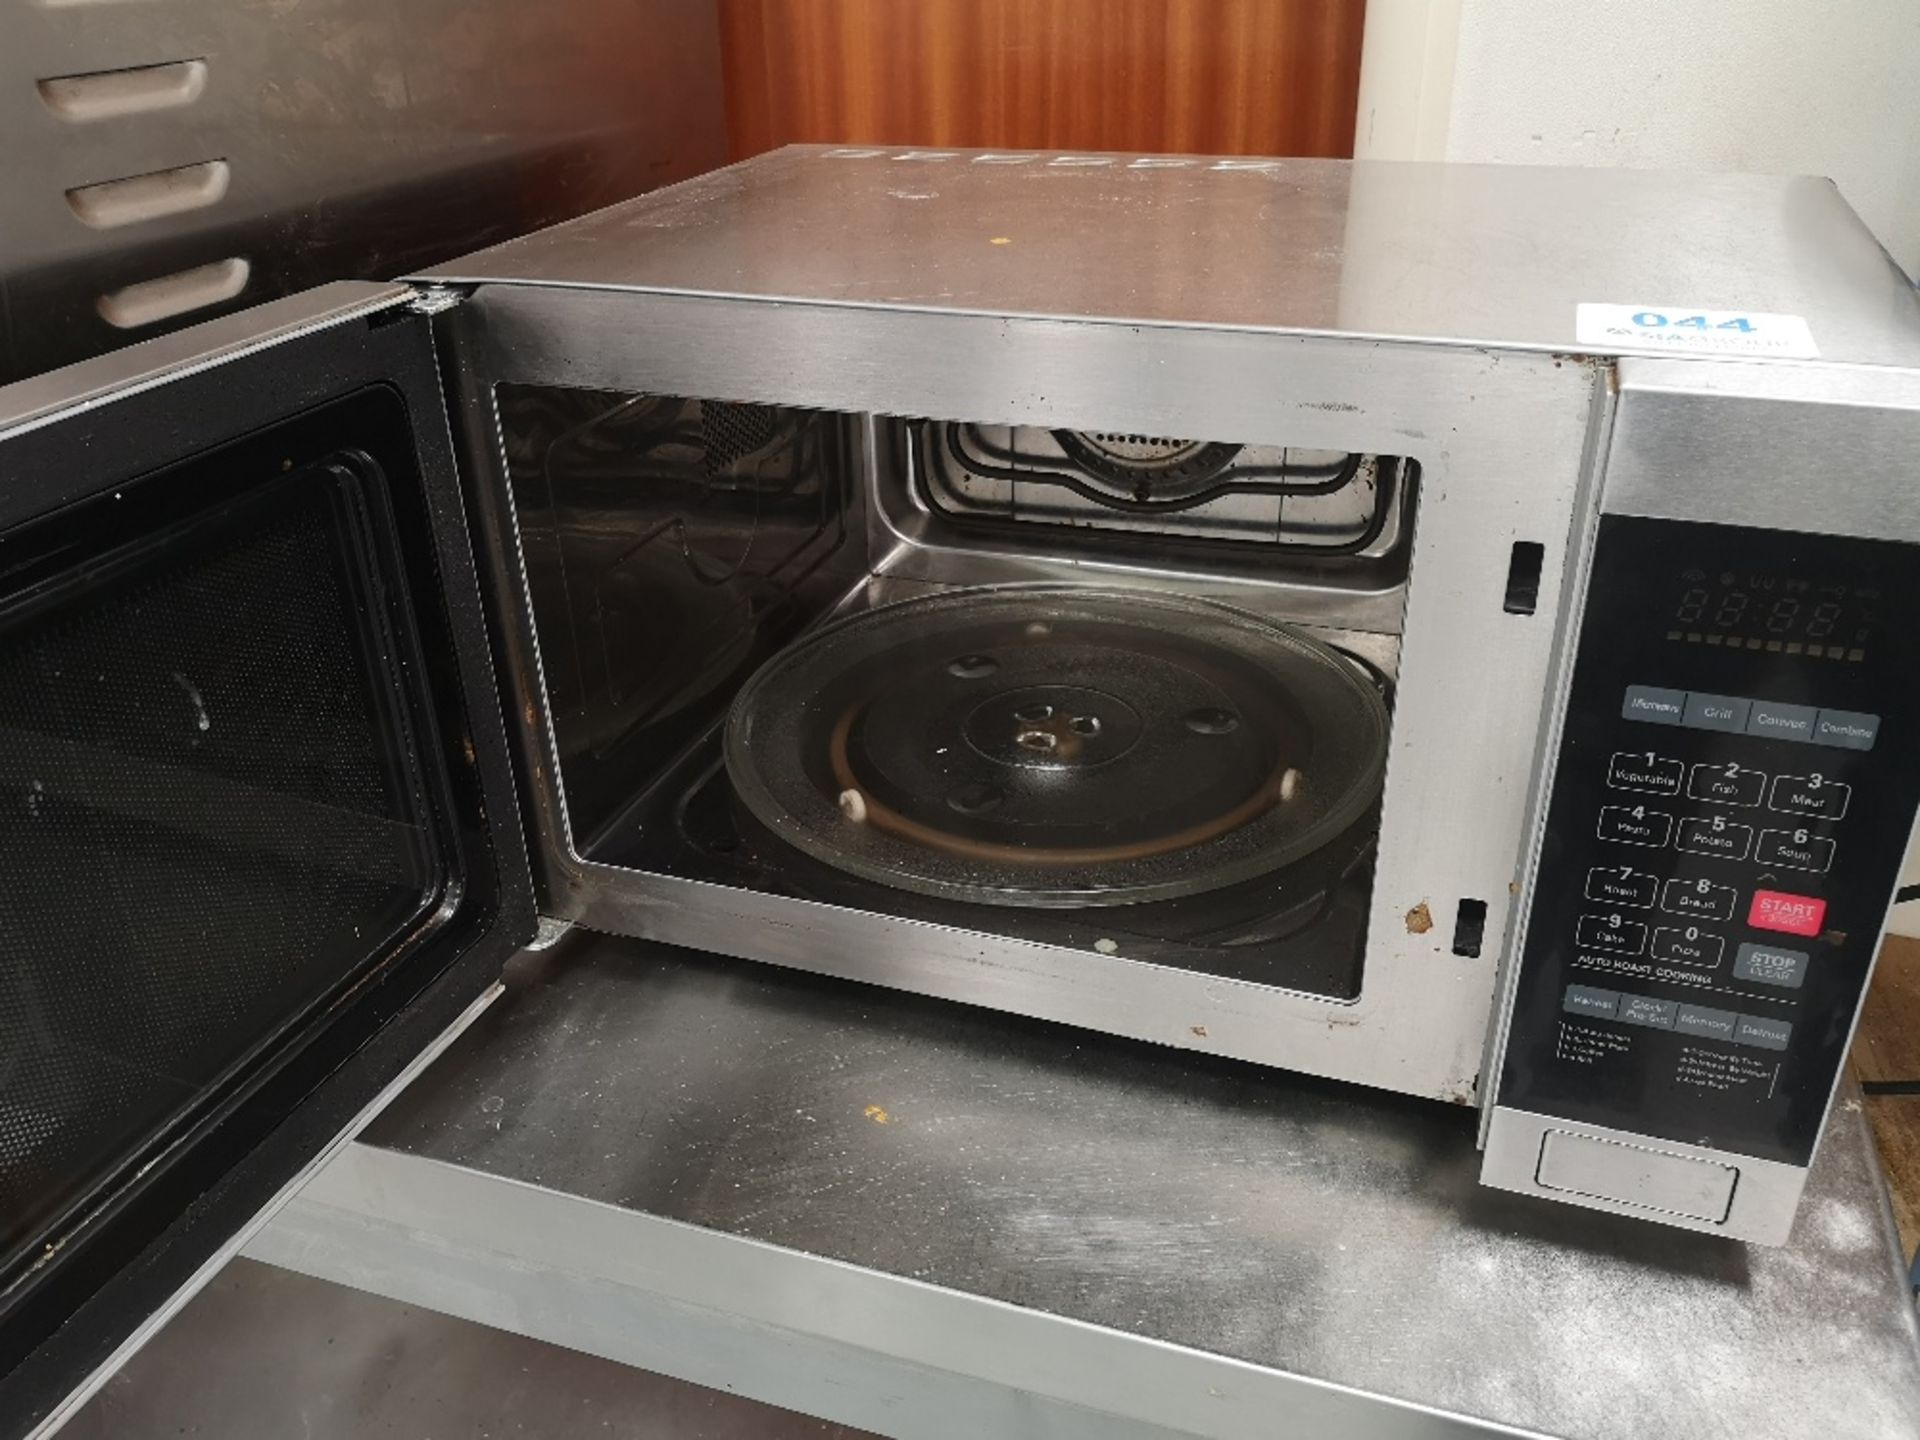 Commercial Microwave Oven - Image 3 of 3